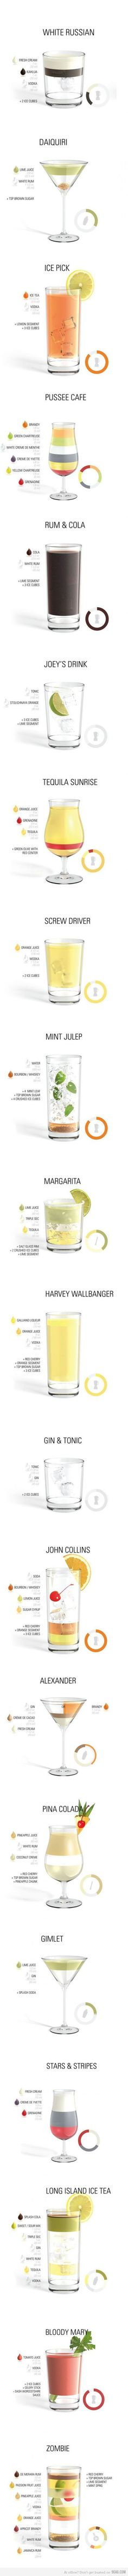 Visualize what you drink